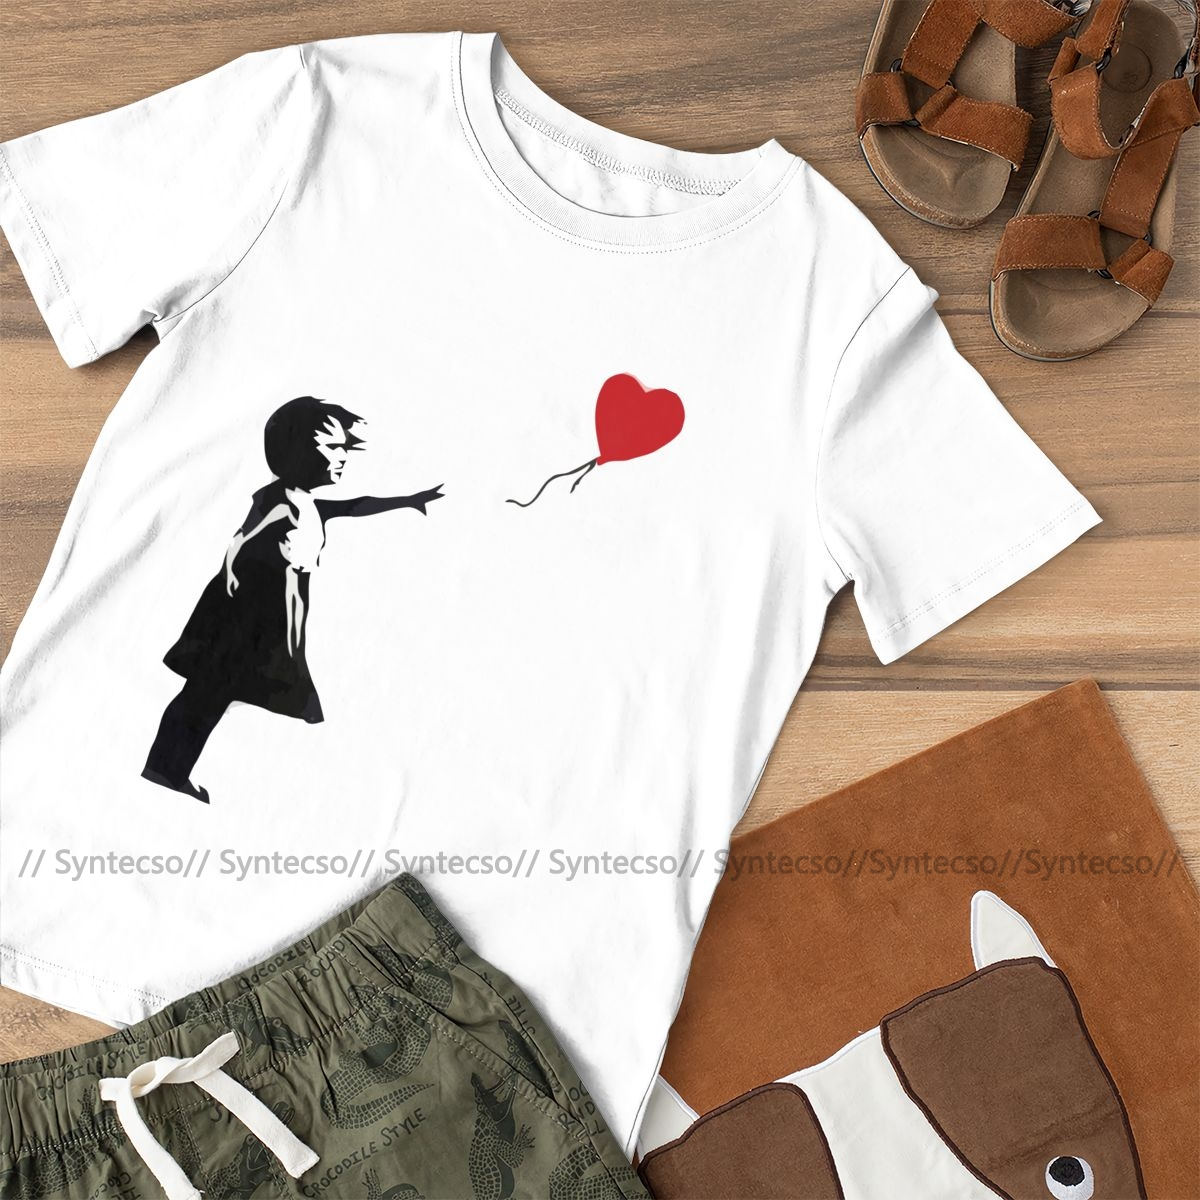 Heart Love T-Shirt Banksy Girl With Balloon T Shirt Trendy Purple Women tshirt Cotton Graphic Ladies Tee Shirt 2